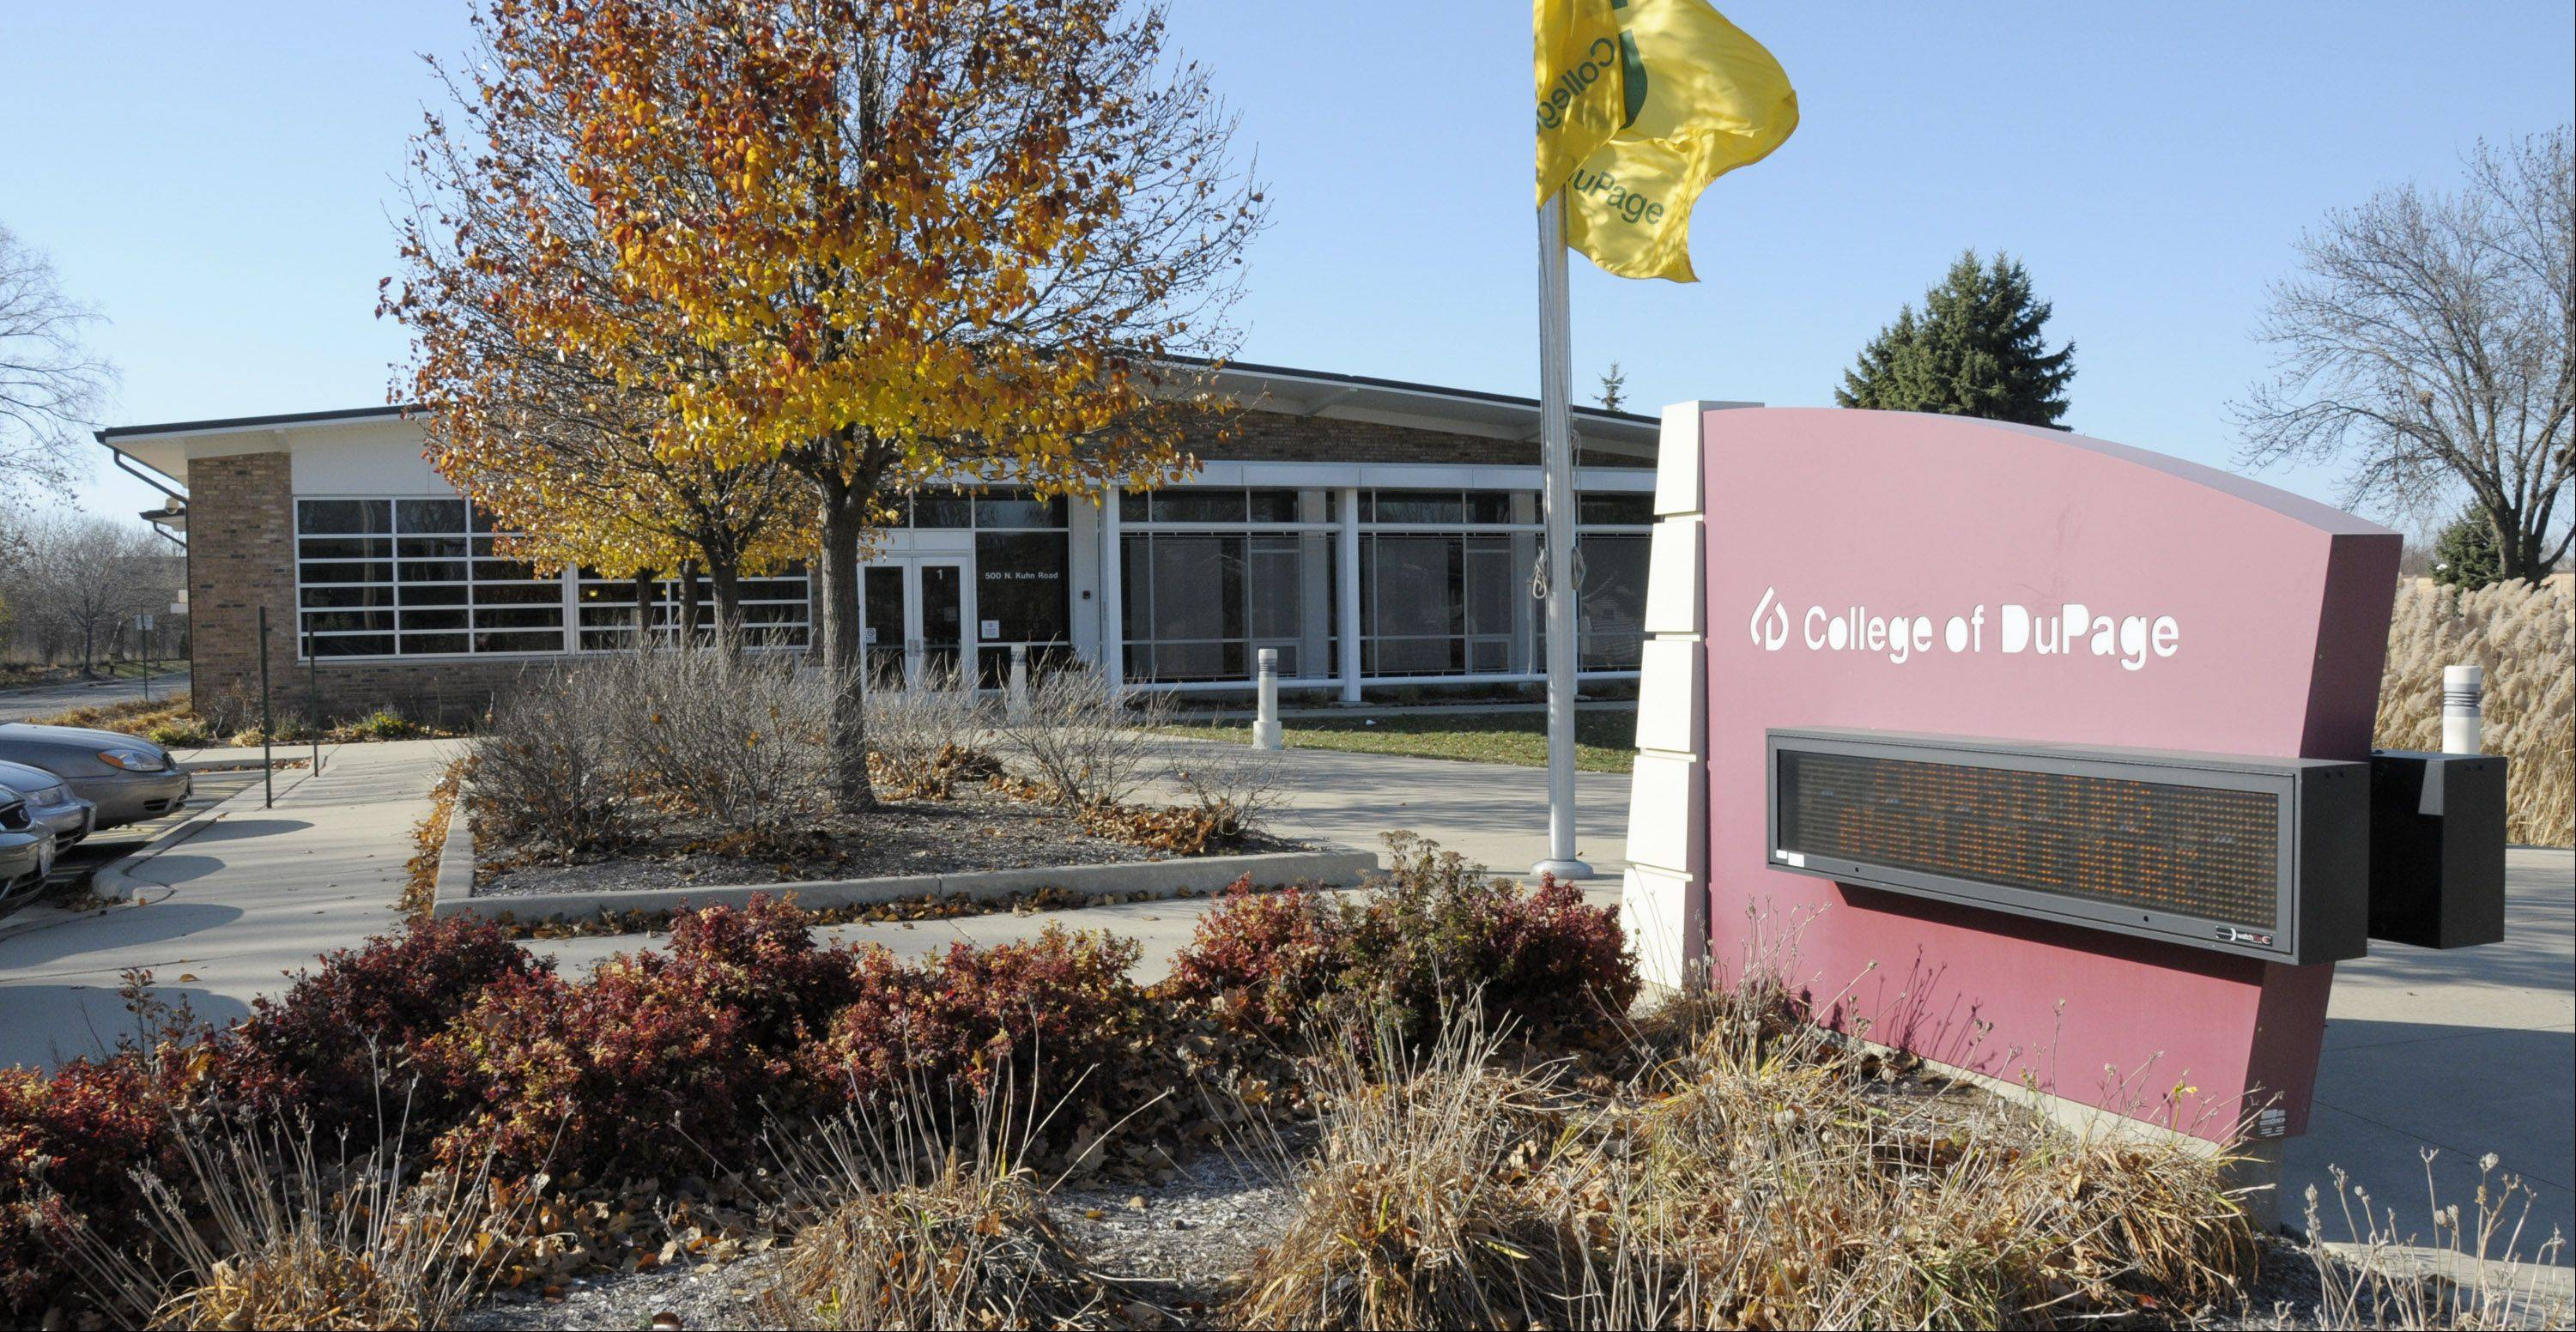 College of DuPage in another sign dispute